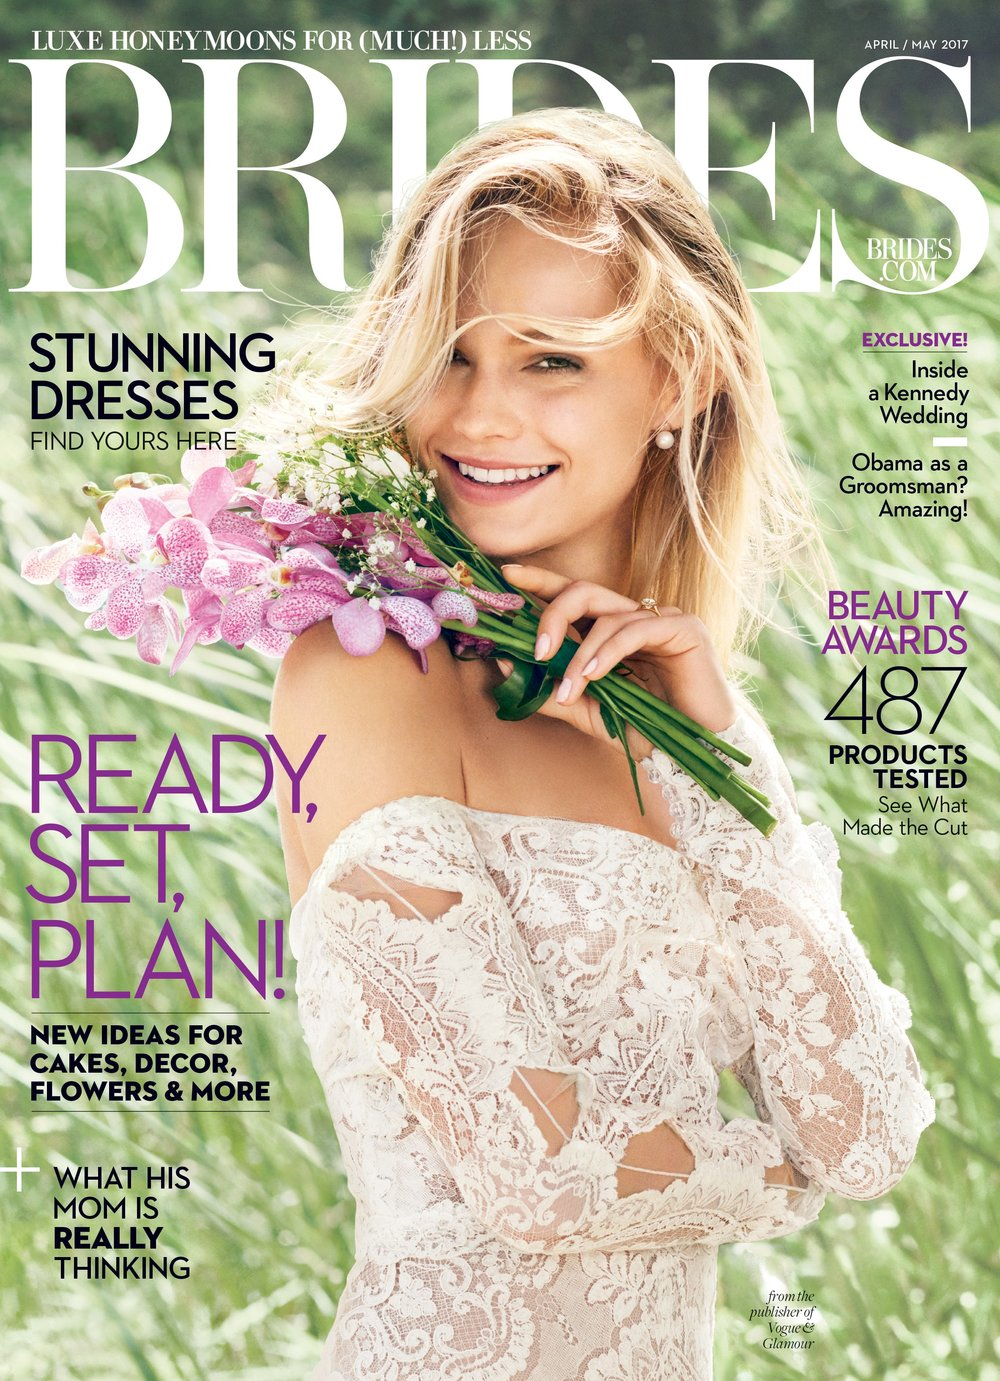 Brides April May 2017.jpg